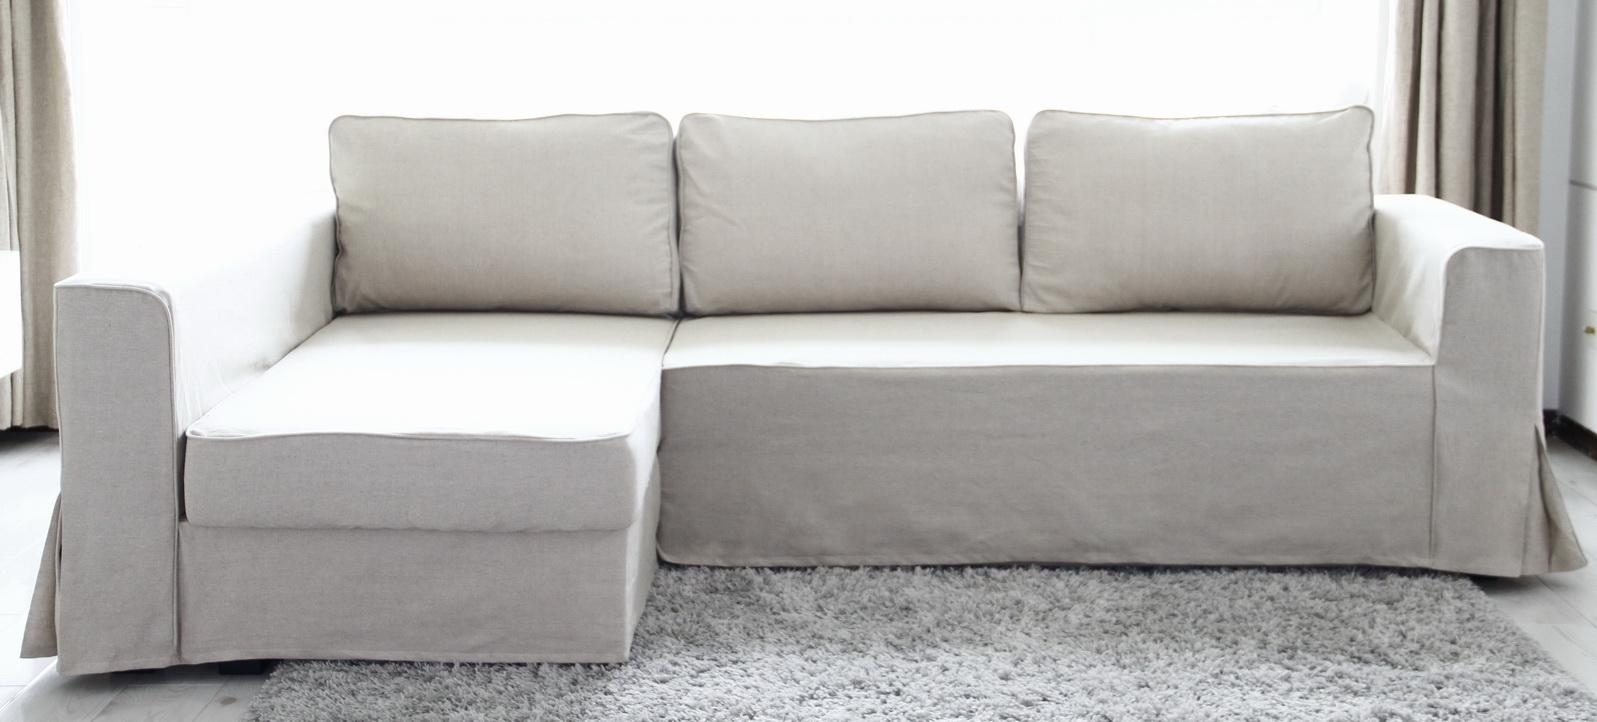 Loose Fit Linen Manstad Sofa Slipcovers Now Available Inside Sofa Armchair Covers (View 2 of 20)